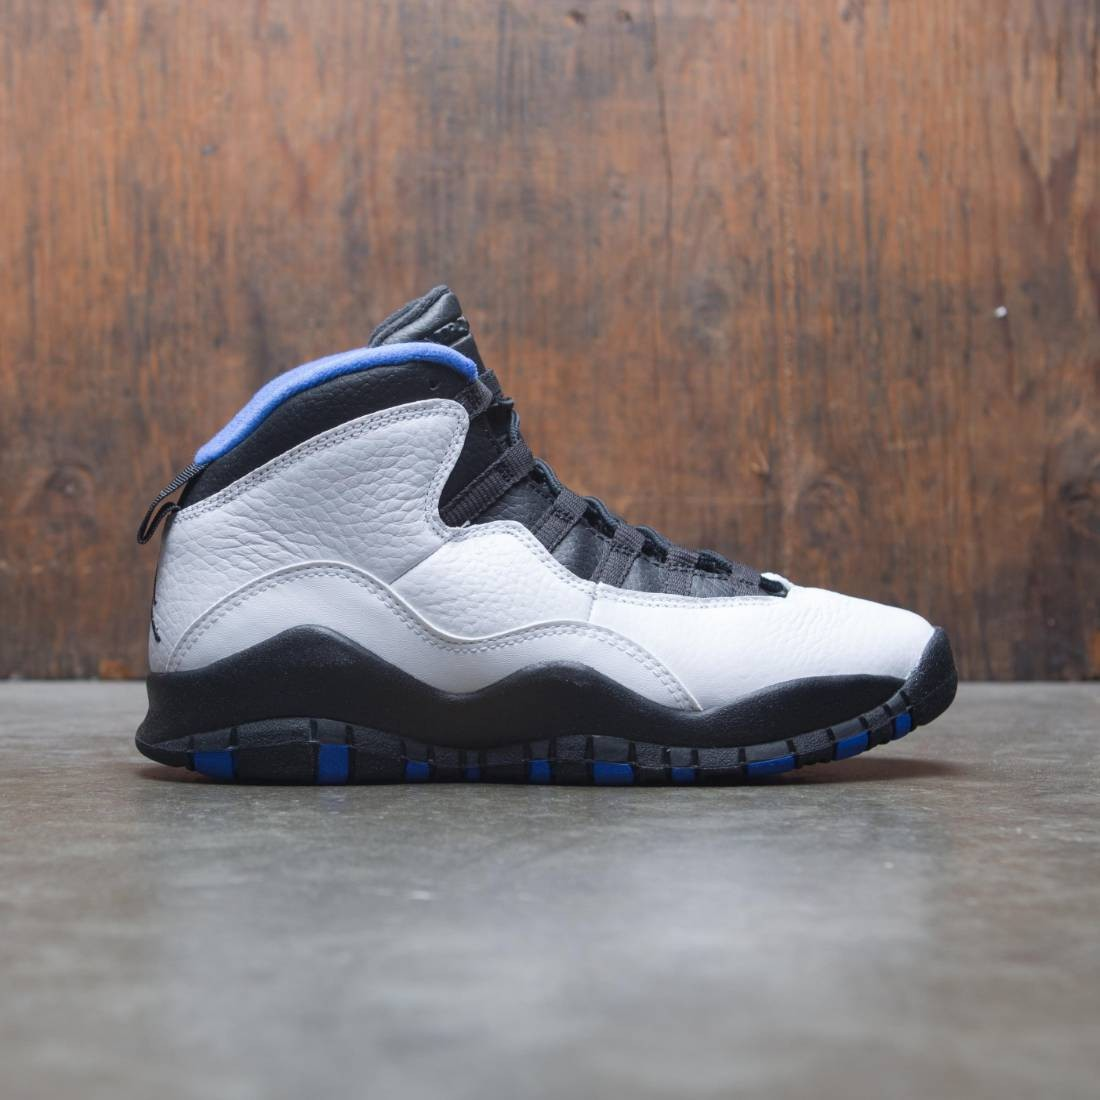 d5797a7f5a4 jordan big kids air jordan retro 10 gs white black royal blue metallic  silver